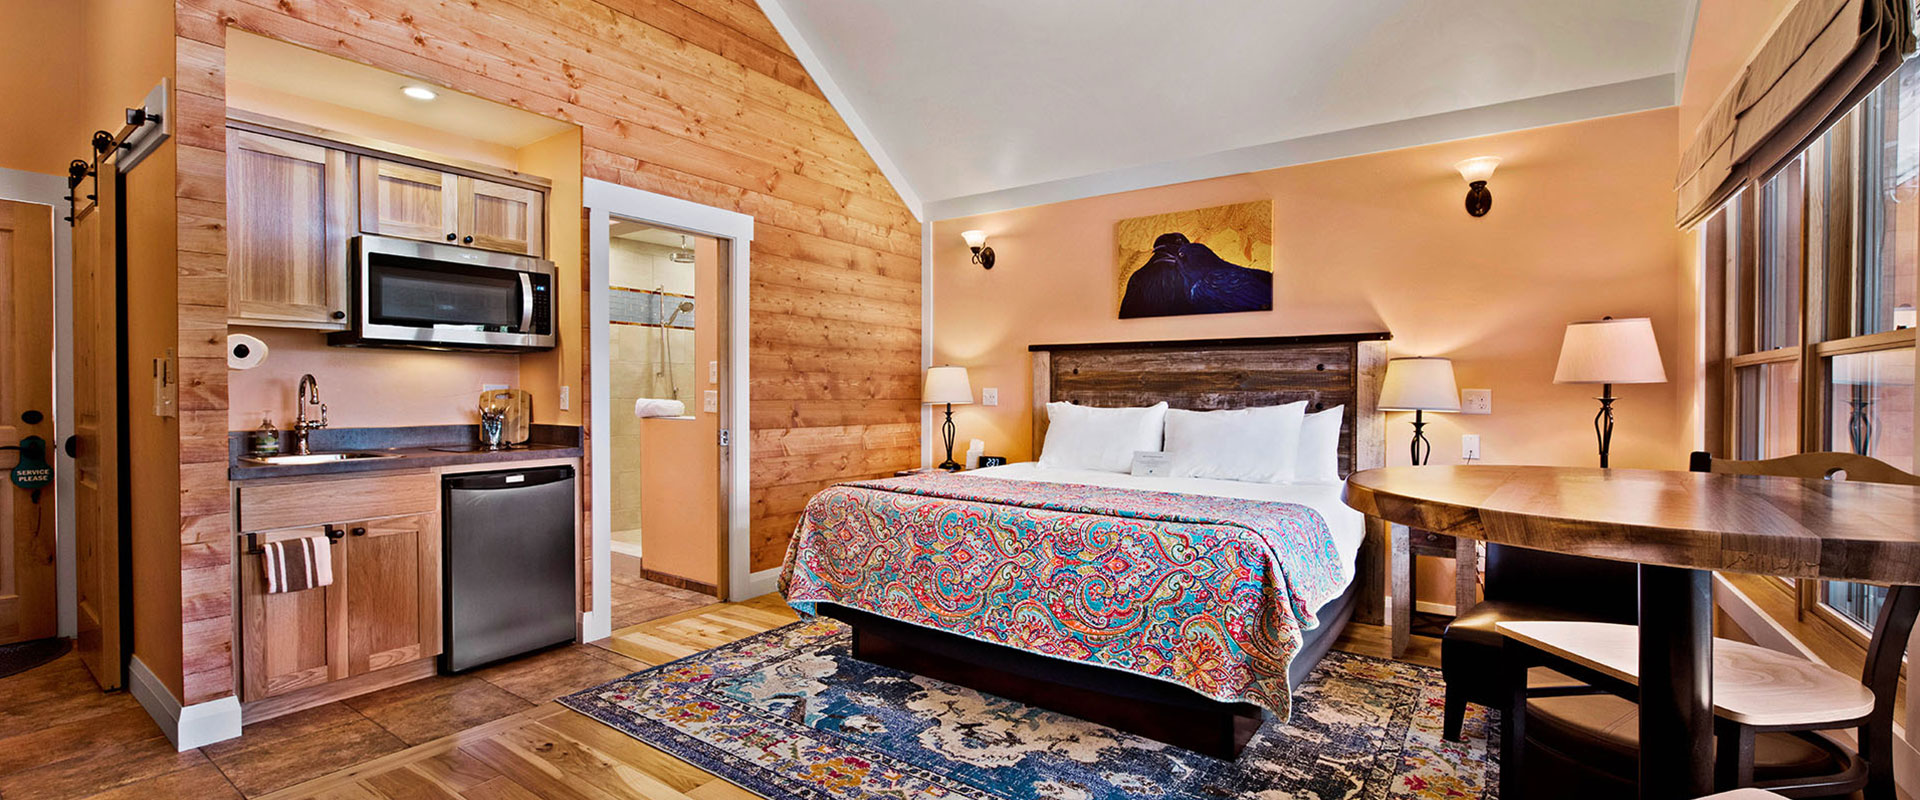 A large view of the kitchen of Unit #18 at Moab Springs Ranch with spacious beige wood cabinets and stainless steel appliances such as stove, refrigerator and microwave.